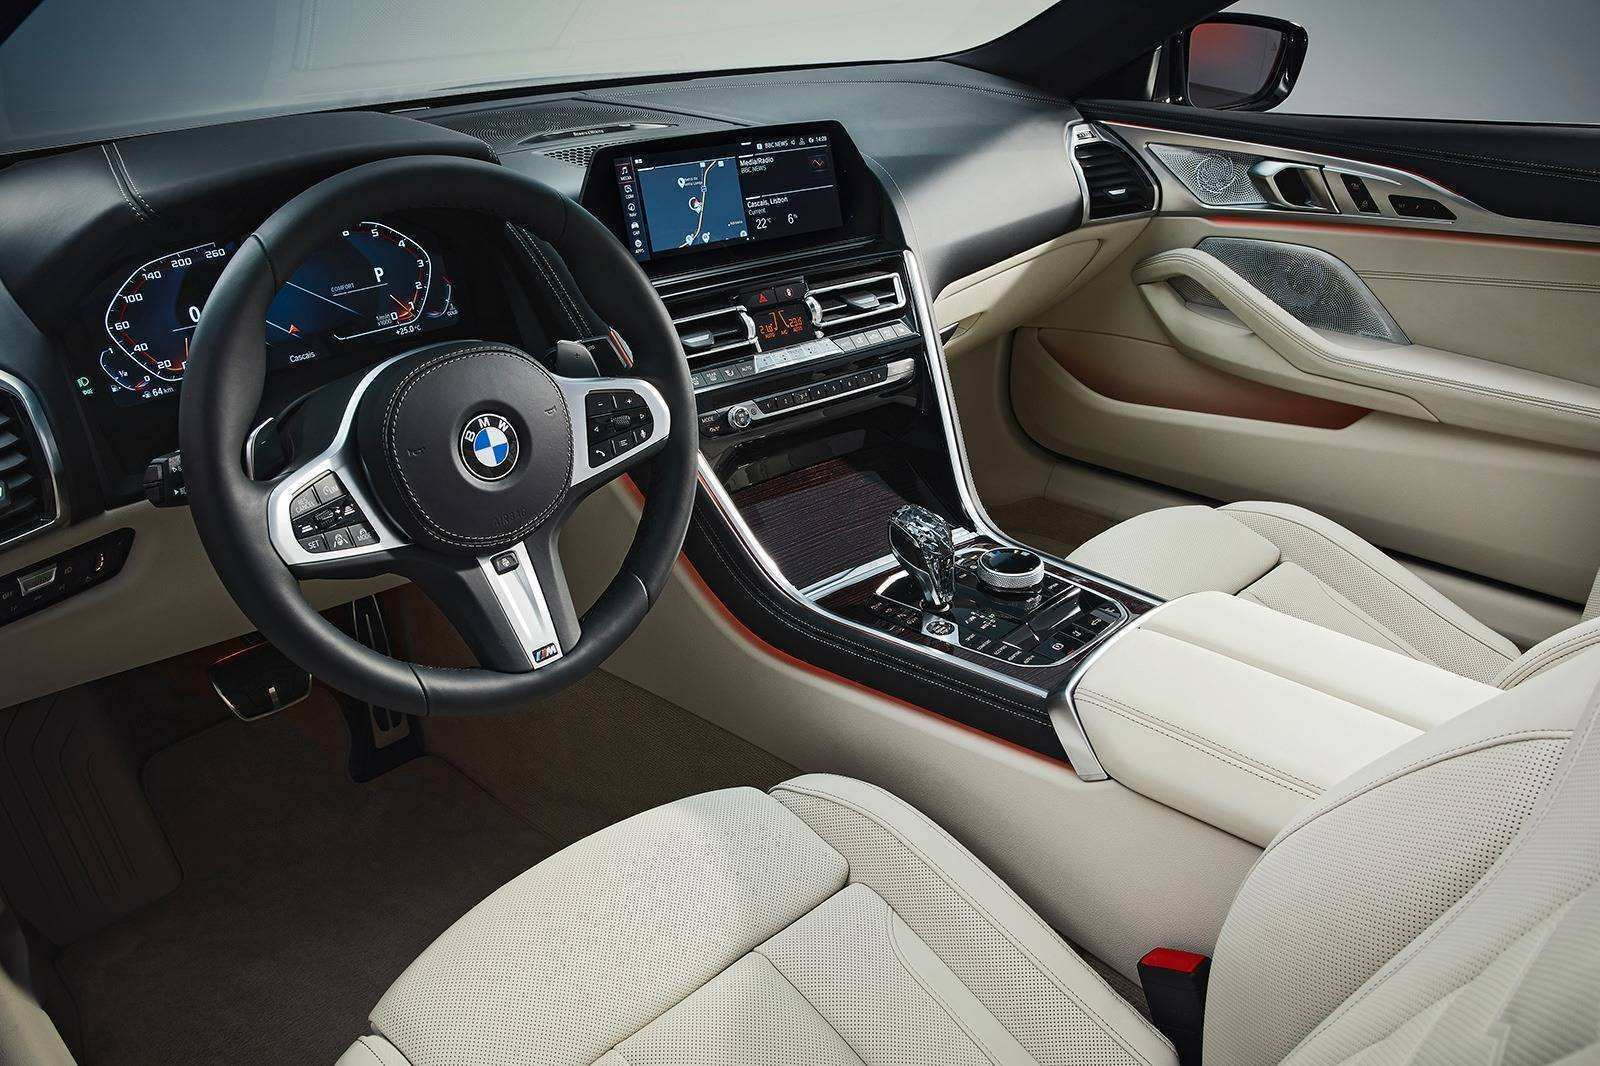 42 All New 2019 Bmw 8 Series Interior Prices by 2019 Bmw 8 Series Interior